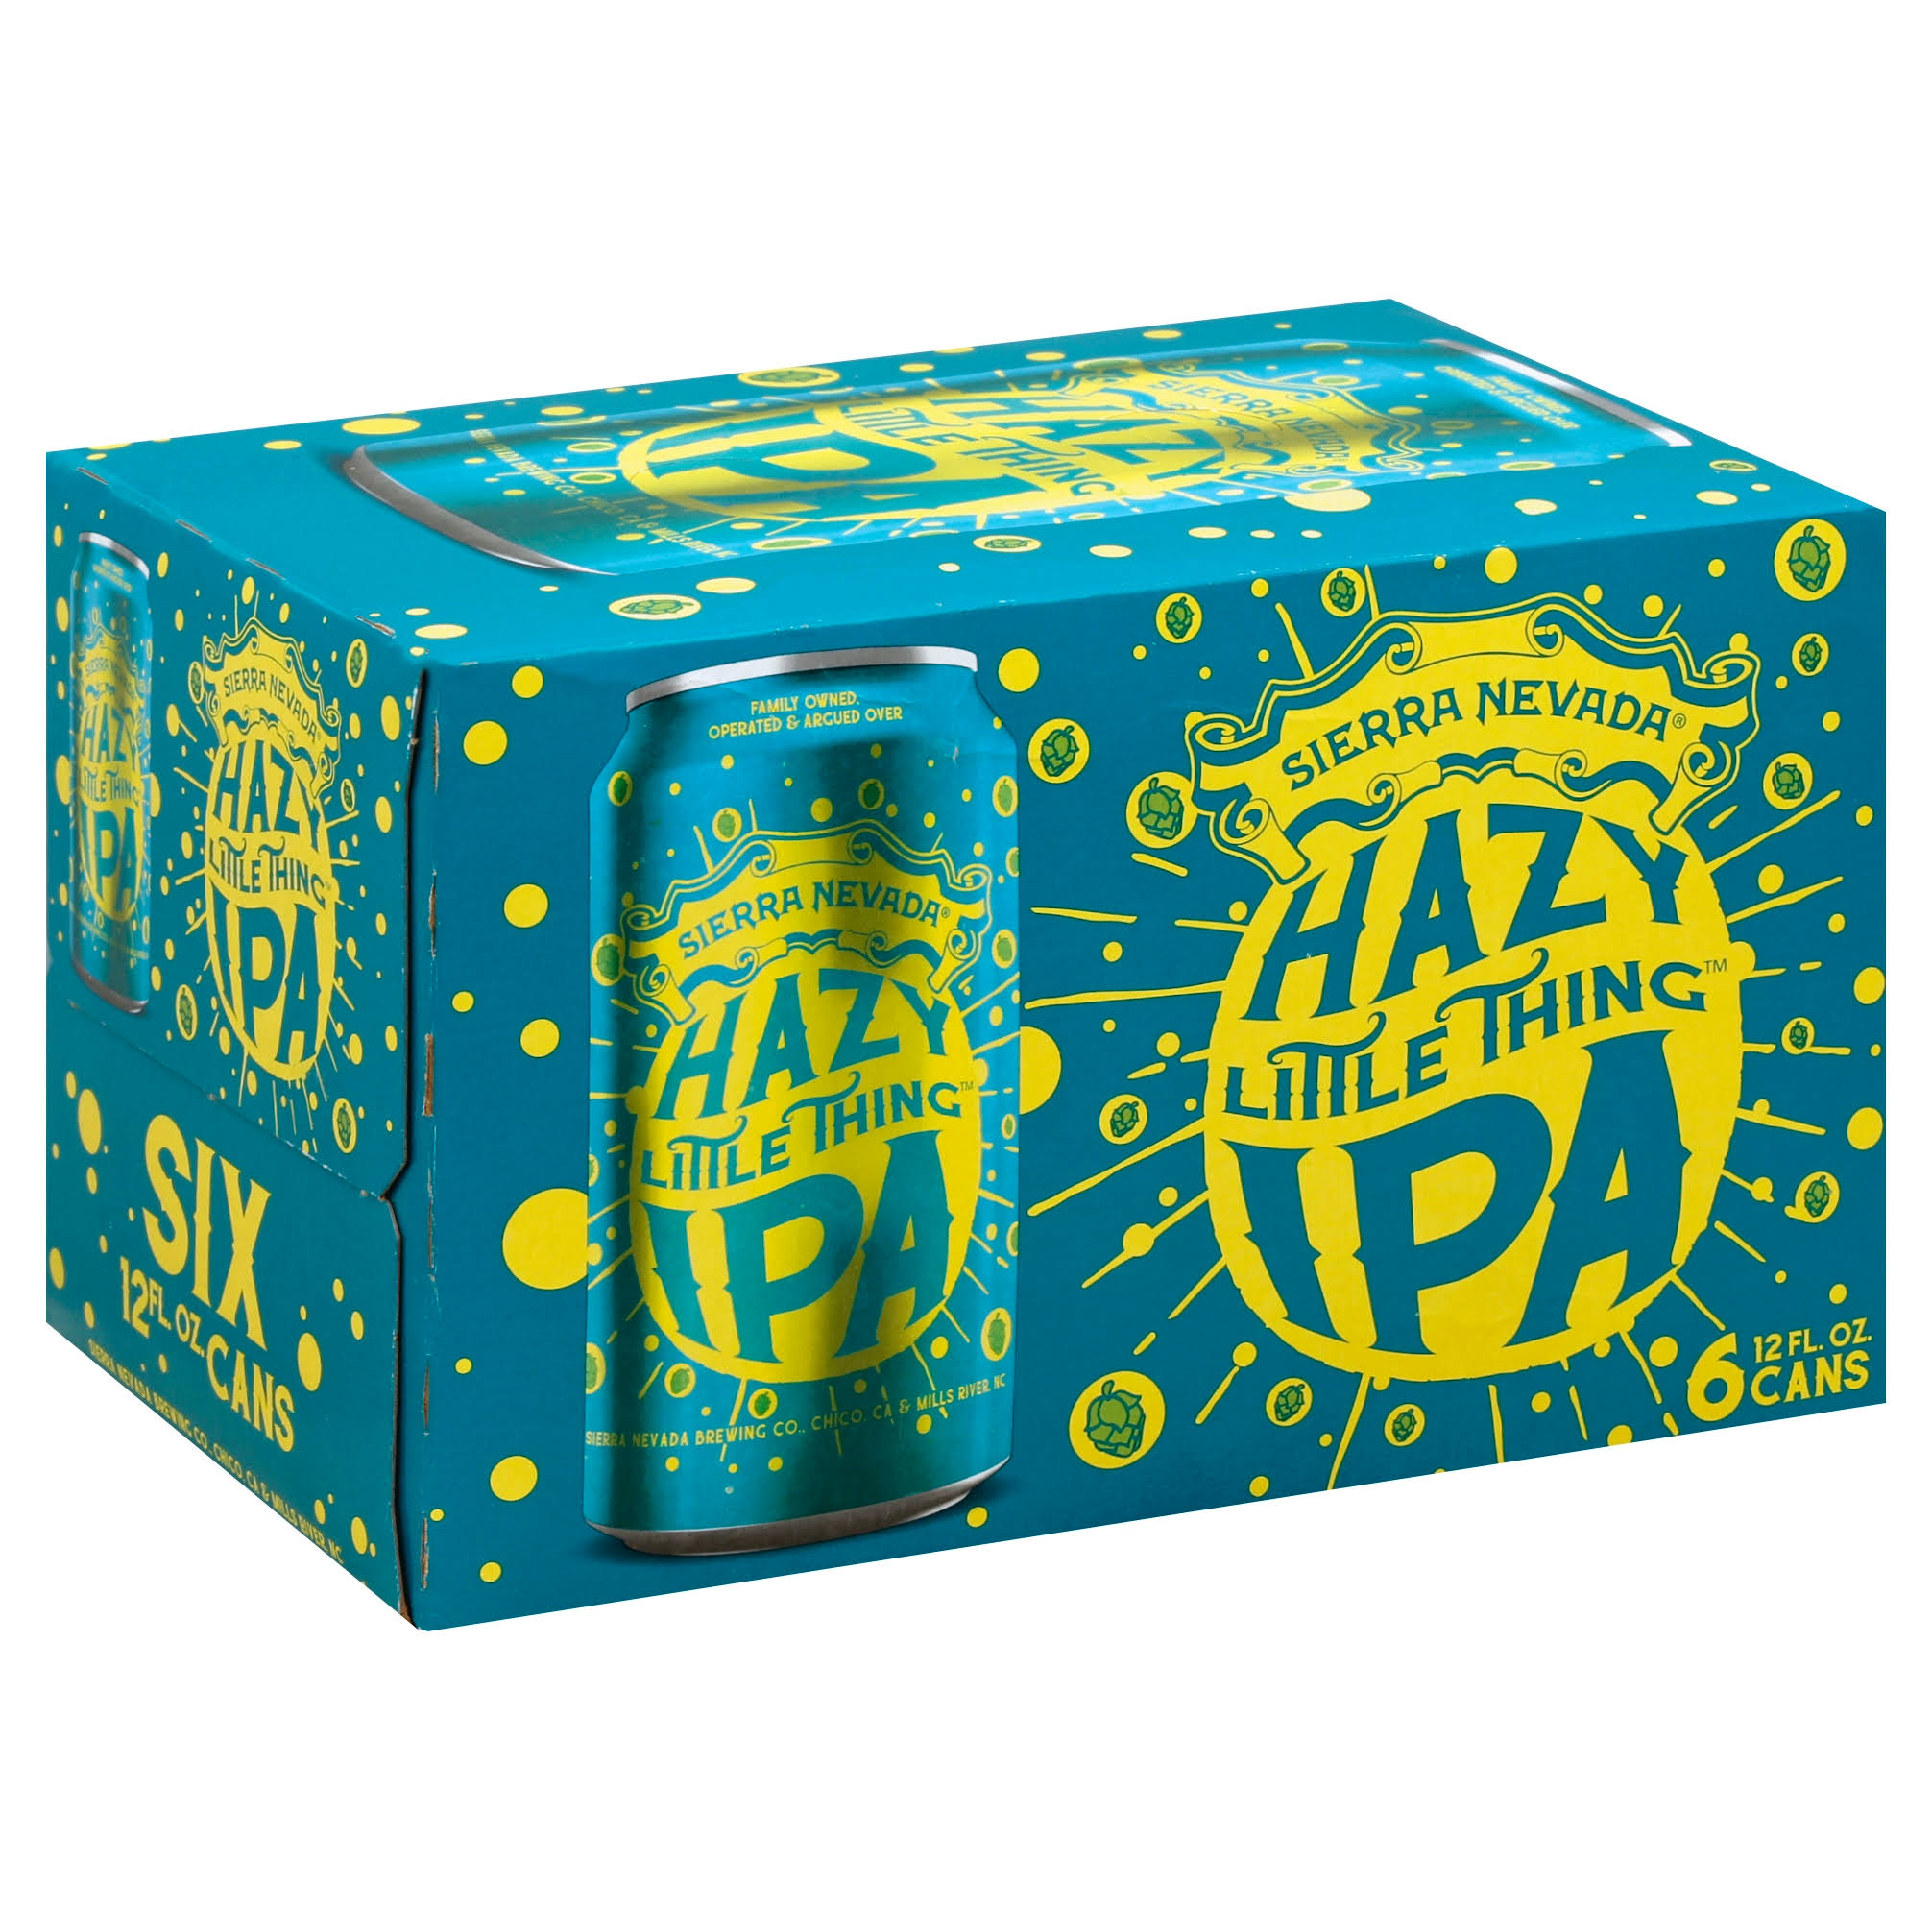 Sierra Nevada Beer, Hazy Little Thing IPA - 6 pack, 12 fl oz cans